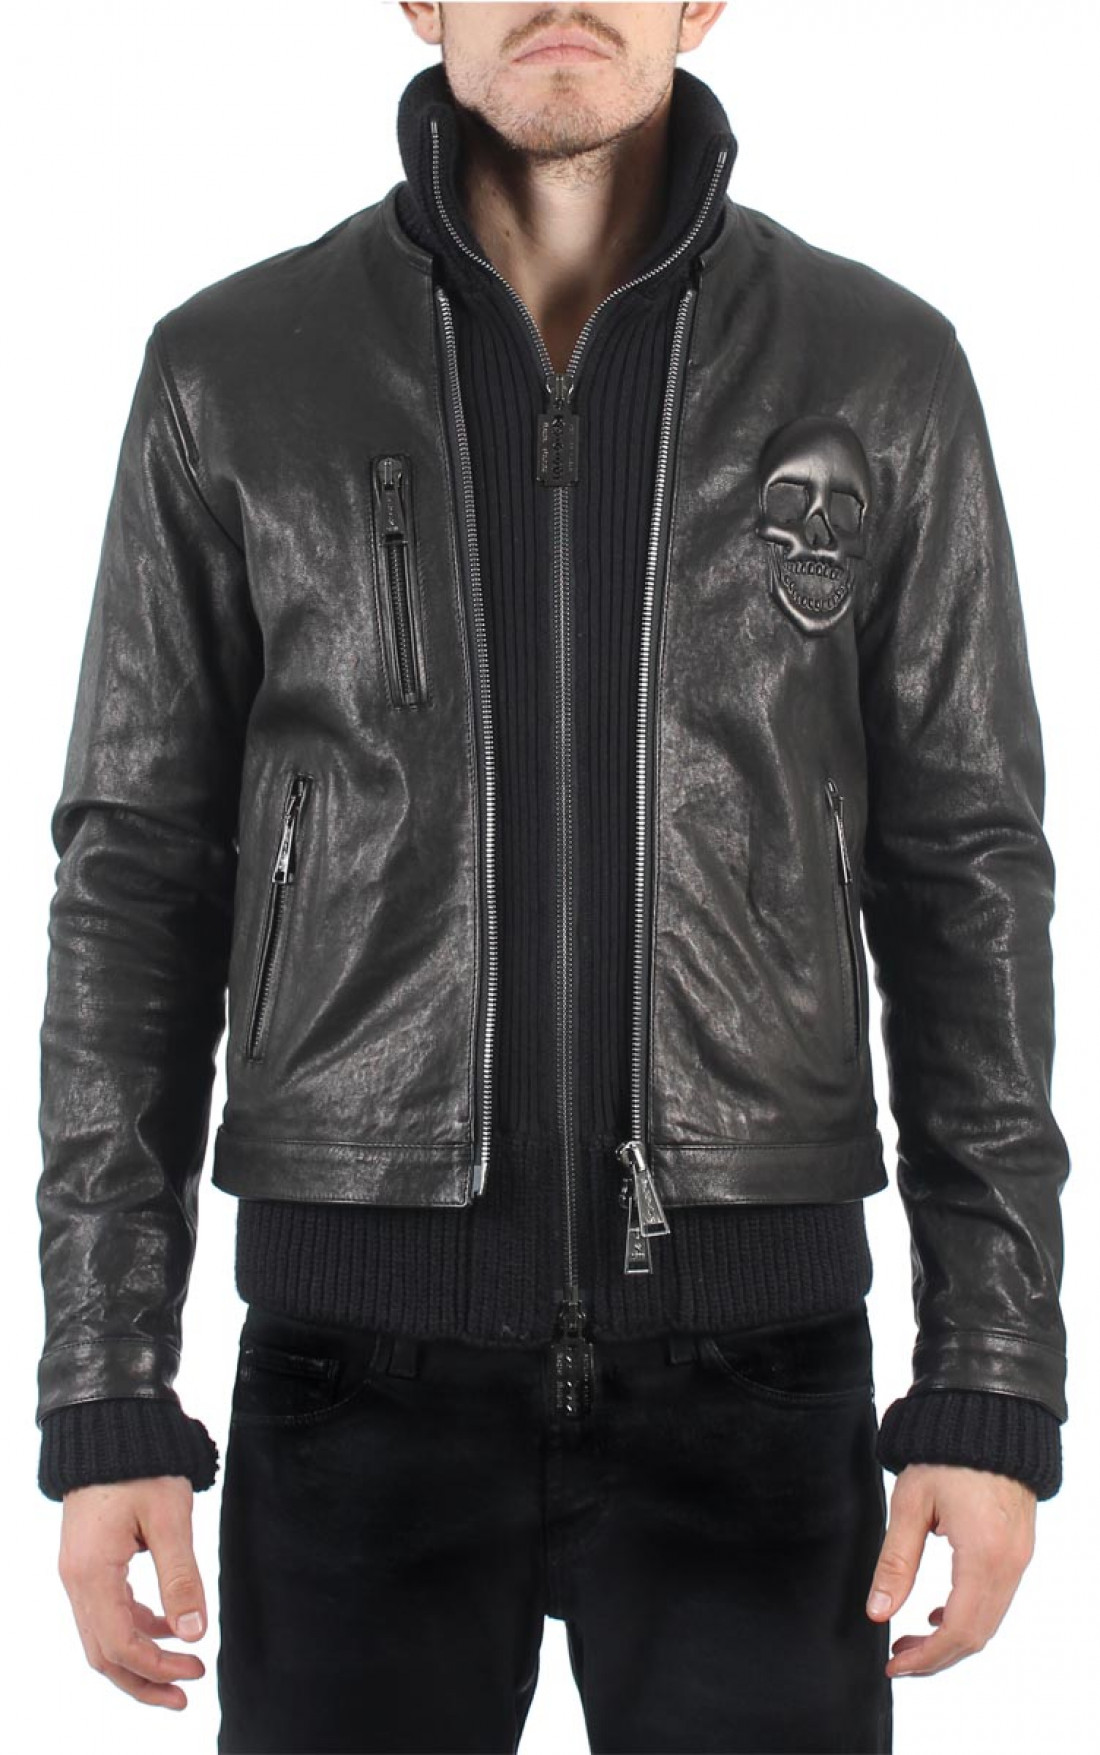 philipp plein 39 professional 39 leather jacket boudi uk. Black Bedroom Furniture Sets. Home Design Ideas